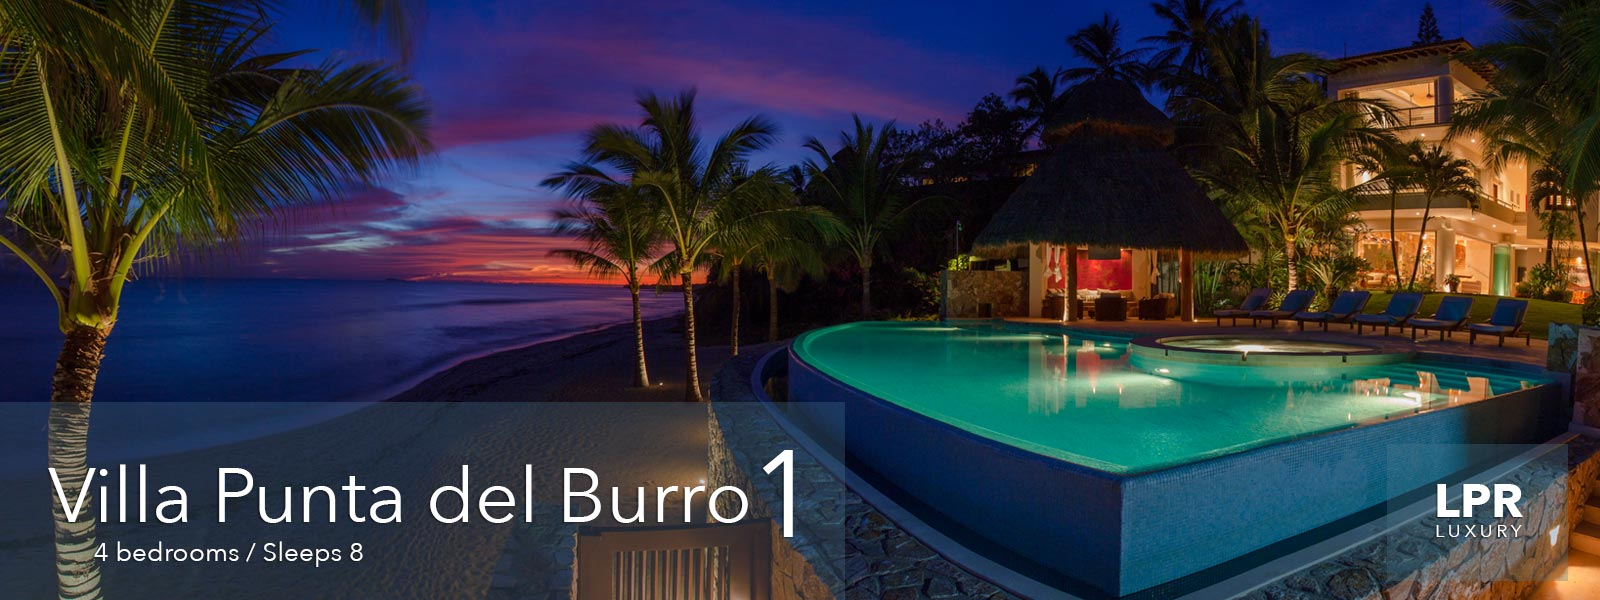 Villa Punta del Burro 1 - Luxury Real Estate and Vacation Rentals - Punta de Mita - Riviera Nayarit , Mexico